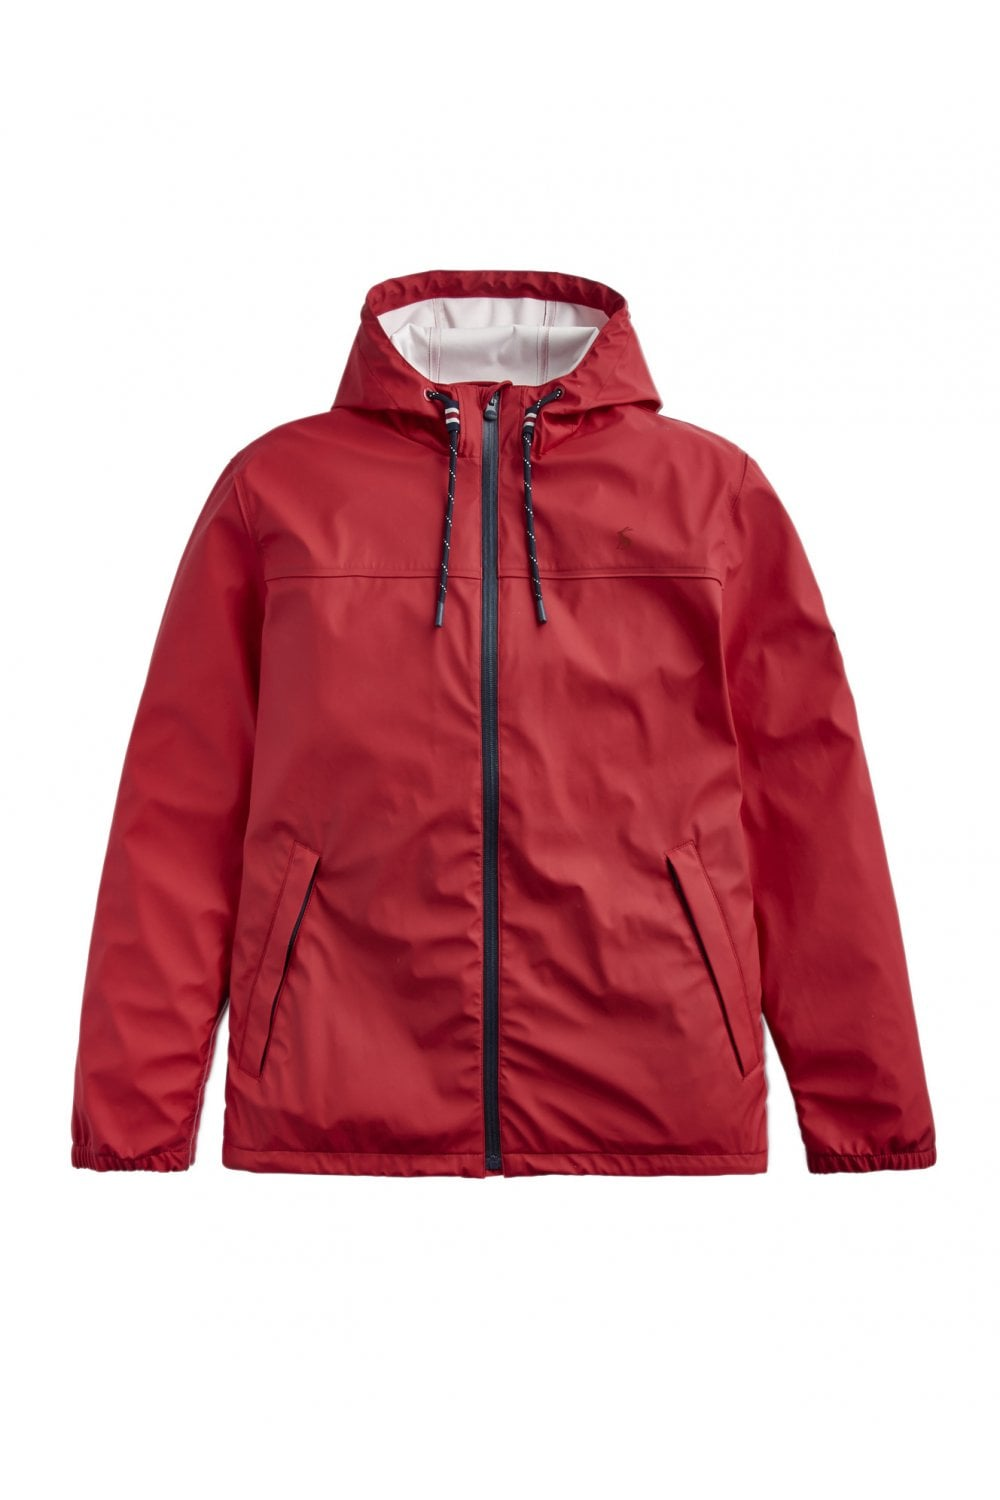 22a59c013 Joules Mens Portwell Lightweight Waterproof Jacket - Chinese Red ...